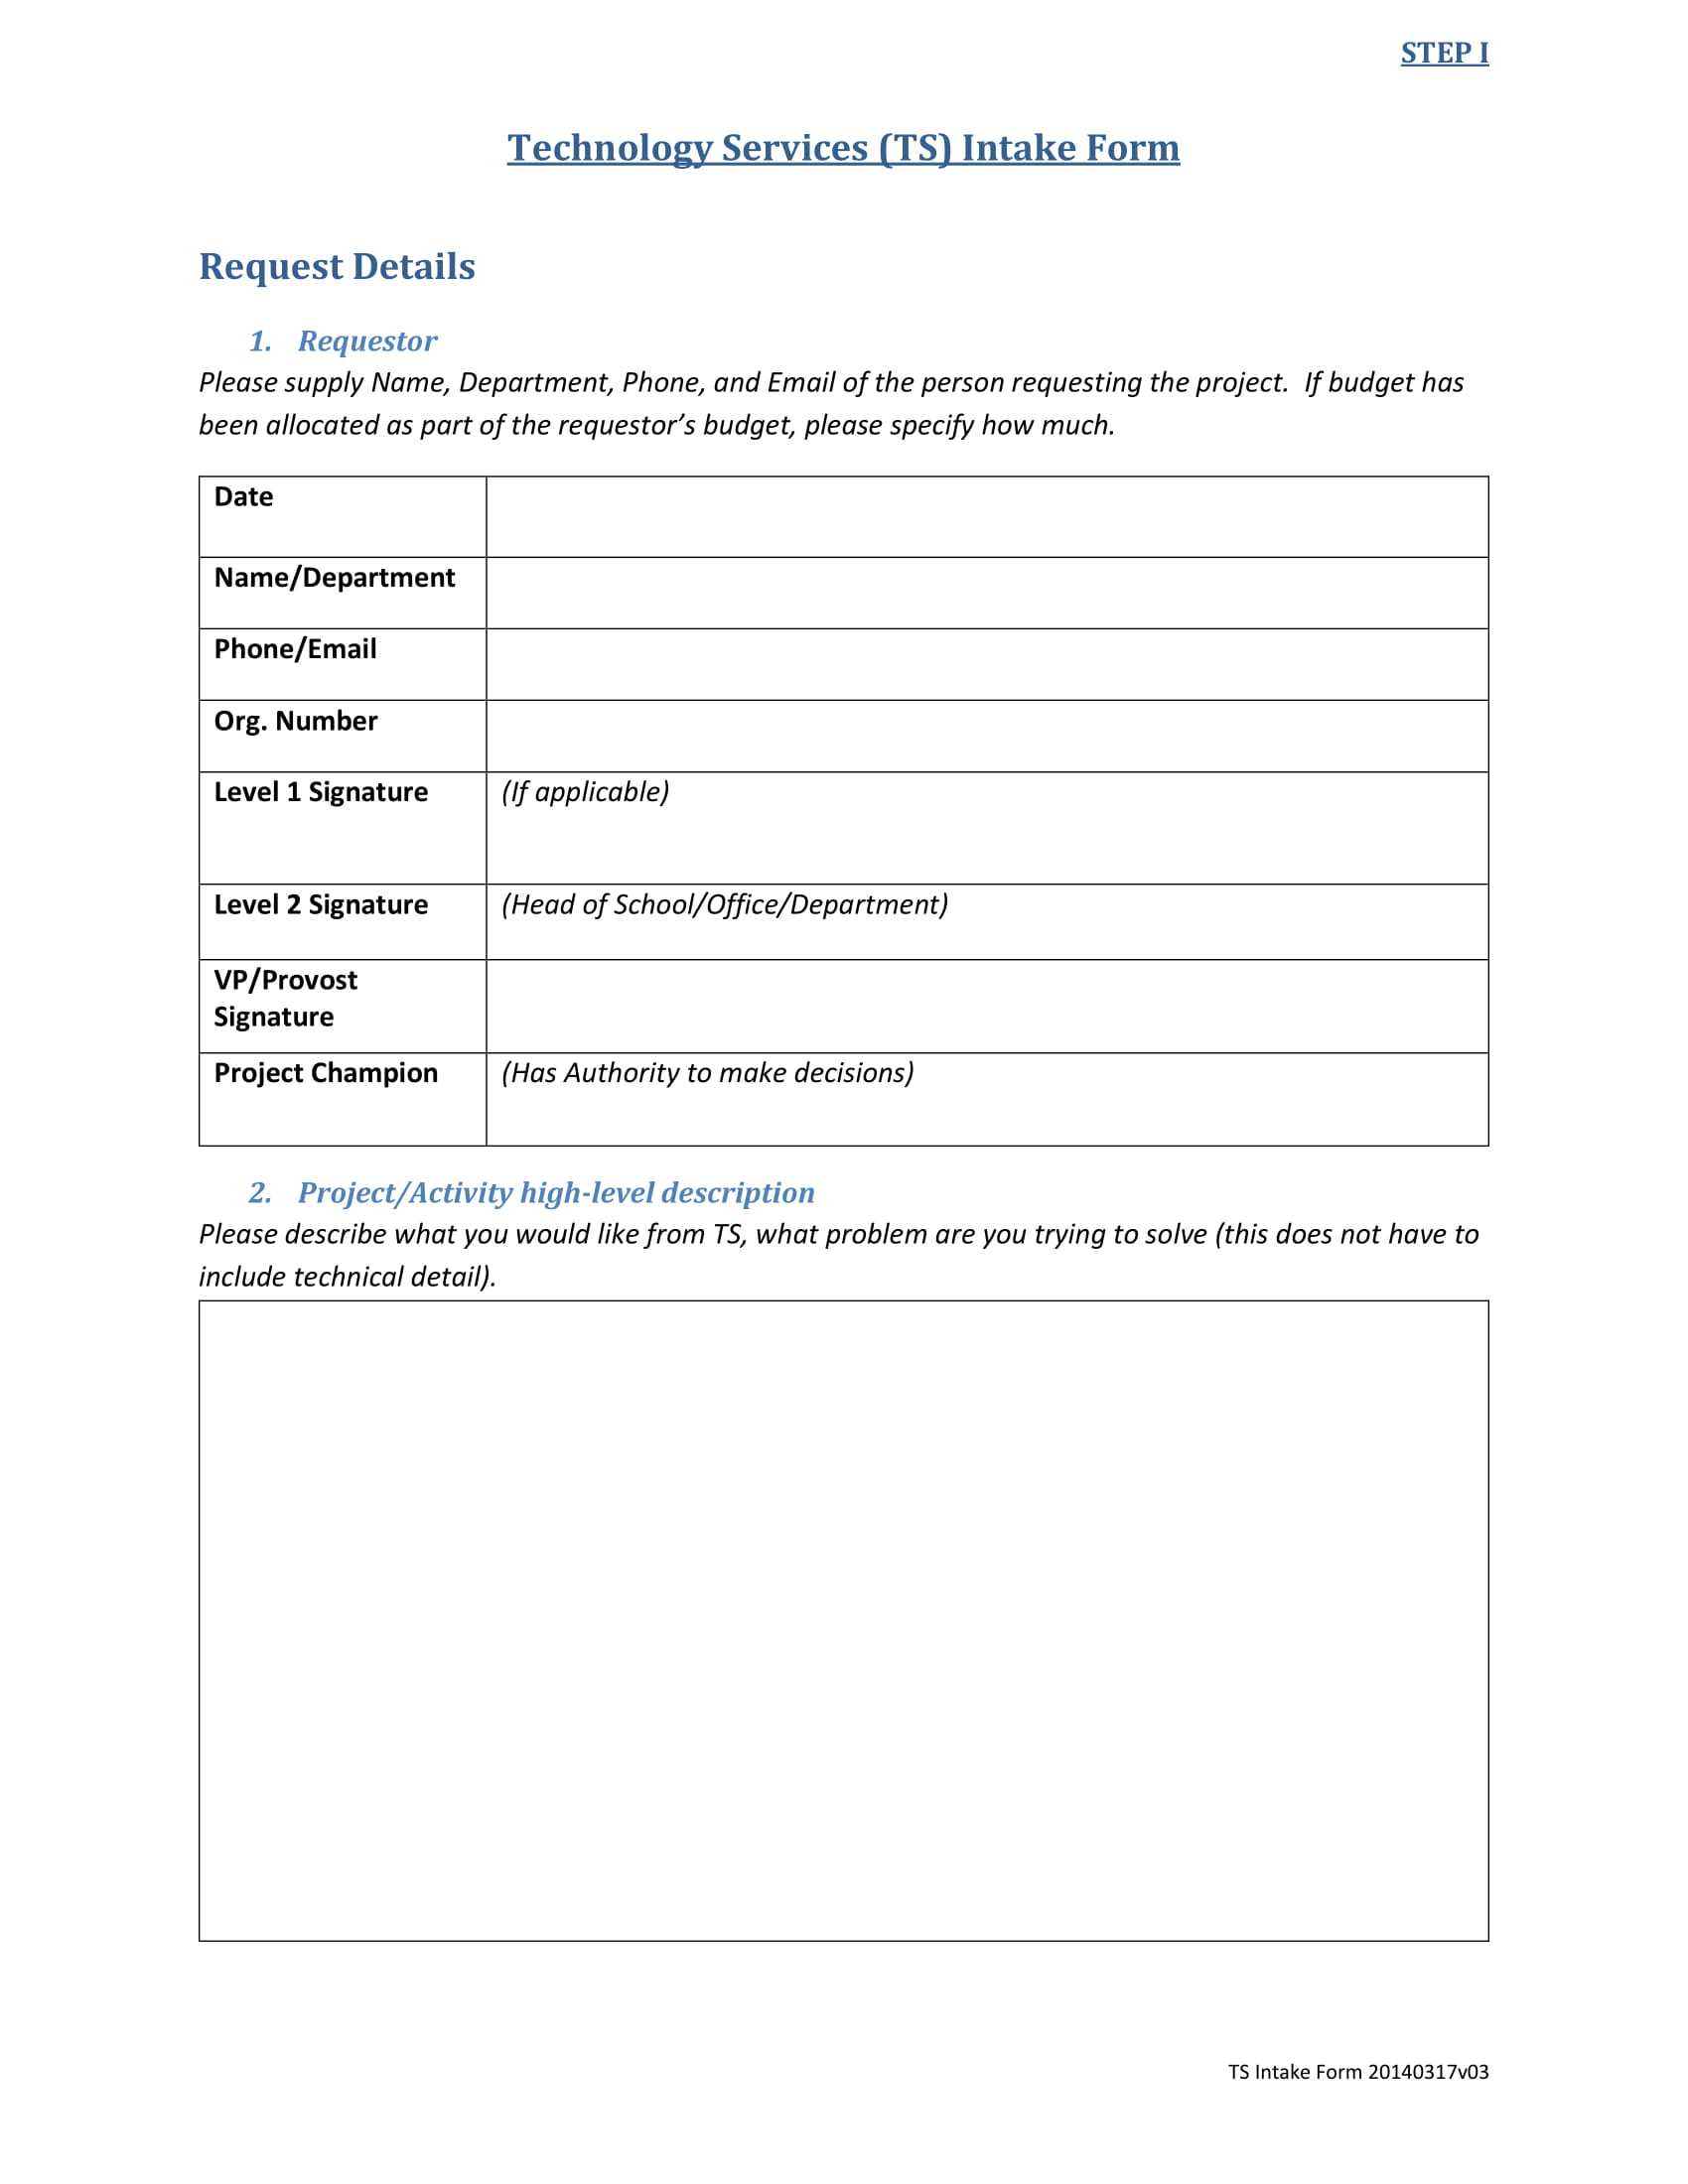 technology services intake form 2